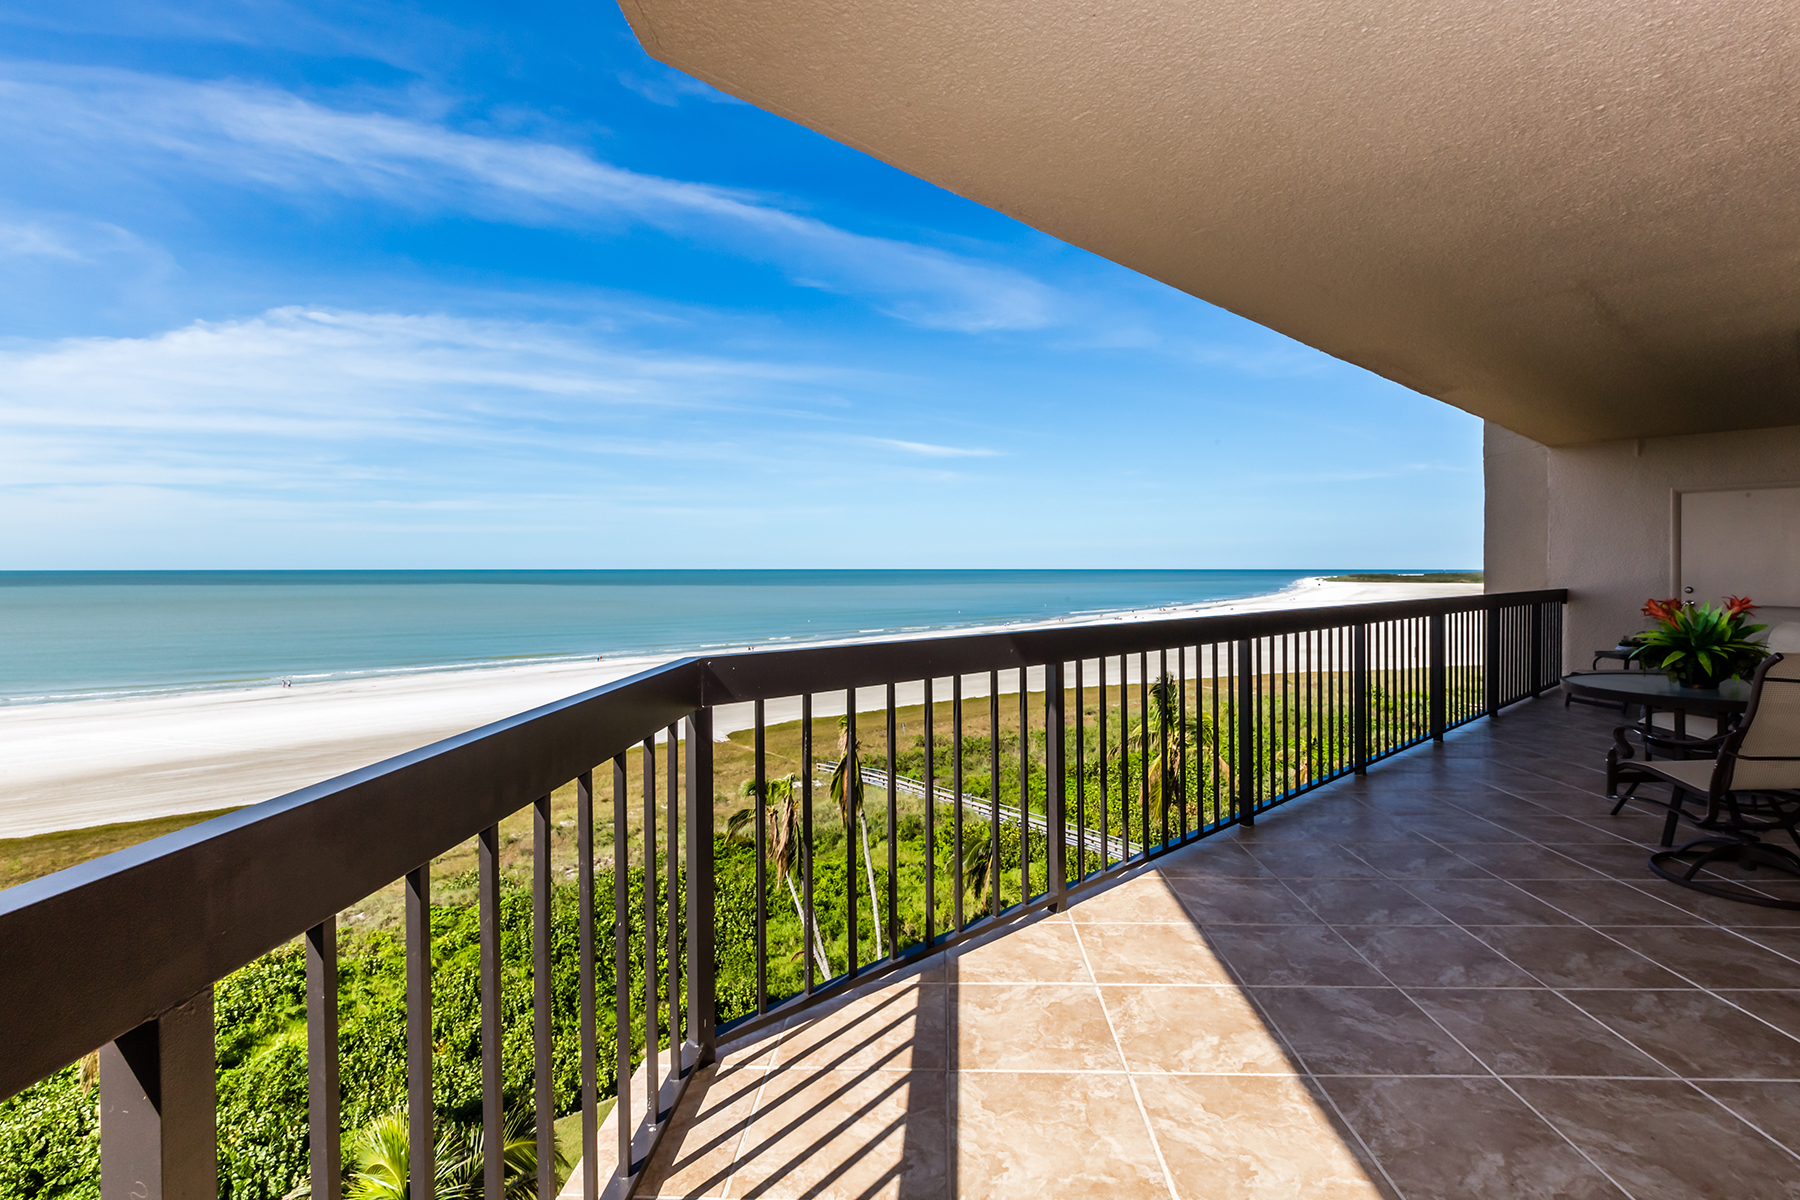 Condominium for Sale at MARCO ISLAND 220 S Collier Blvd 801, Marco Island, Florida 34145 United States